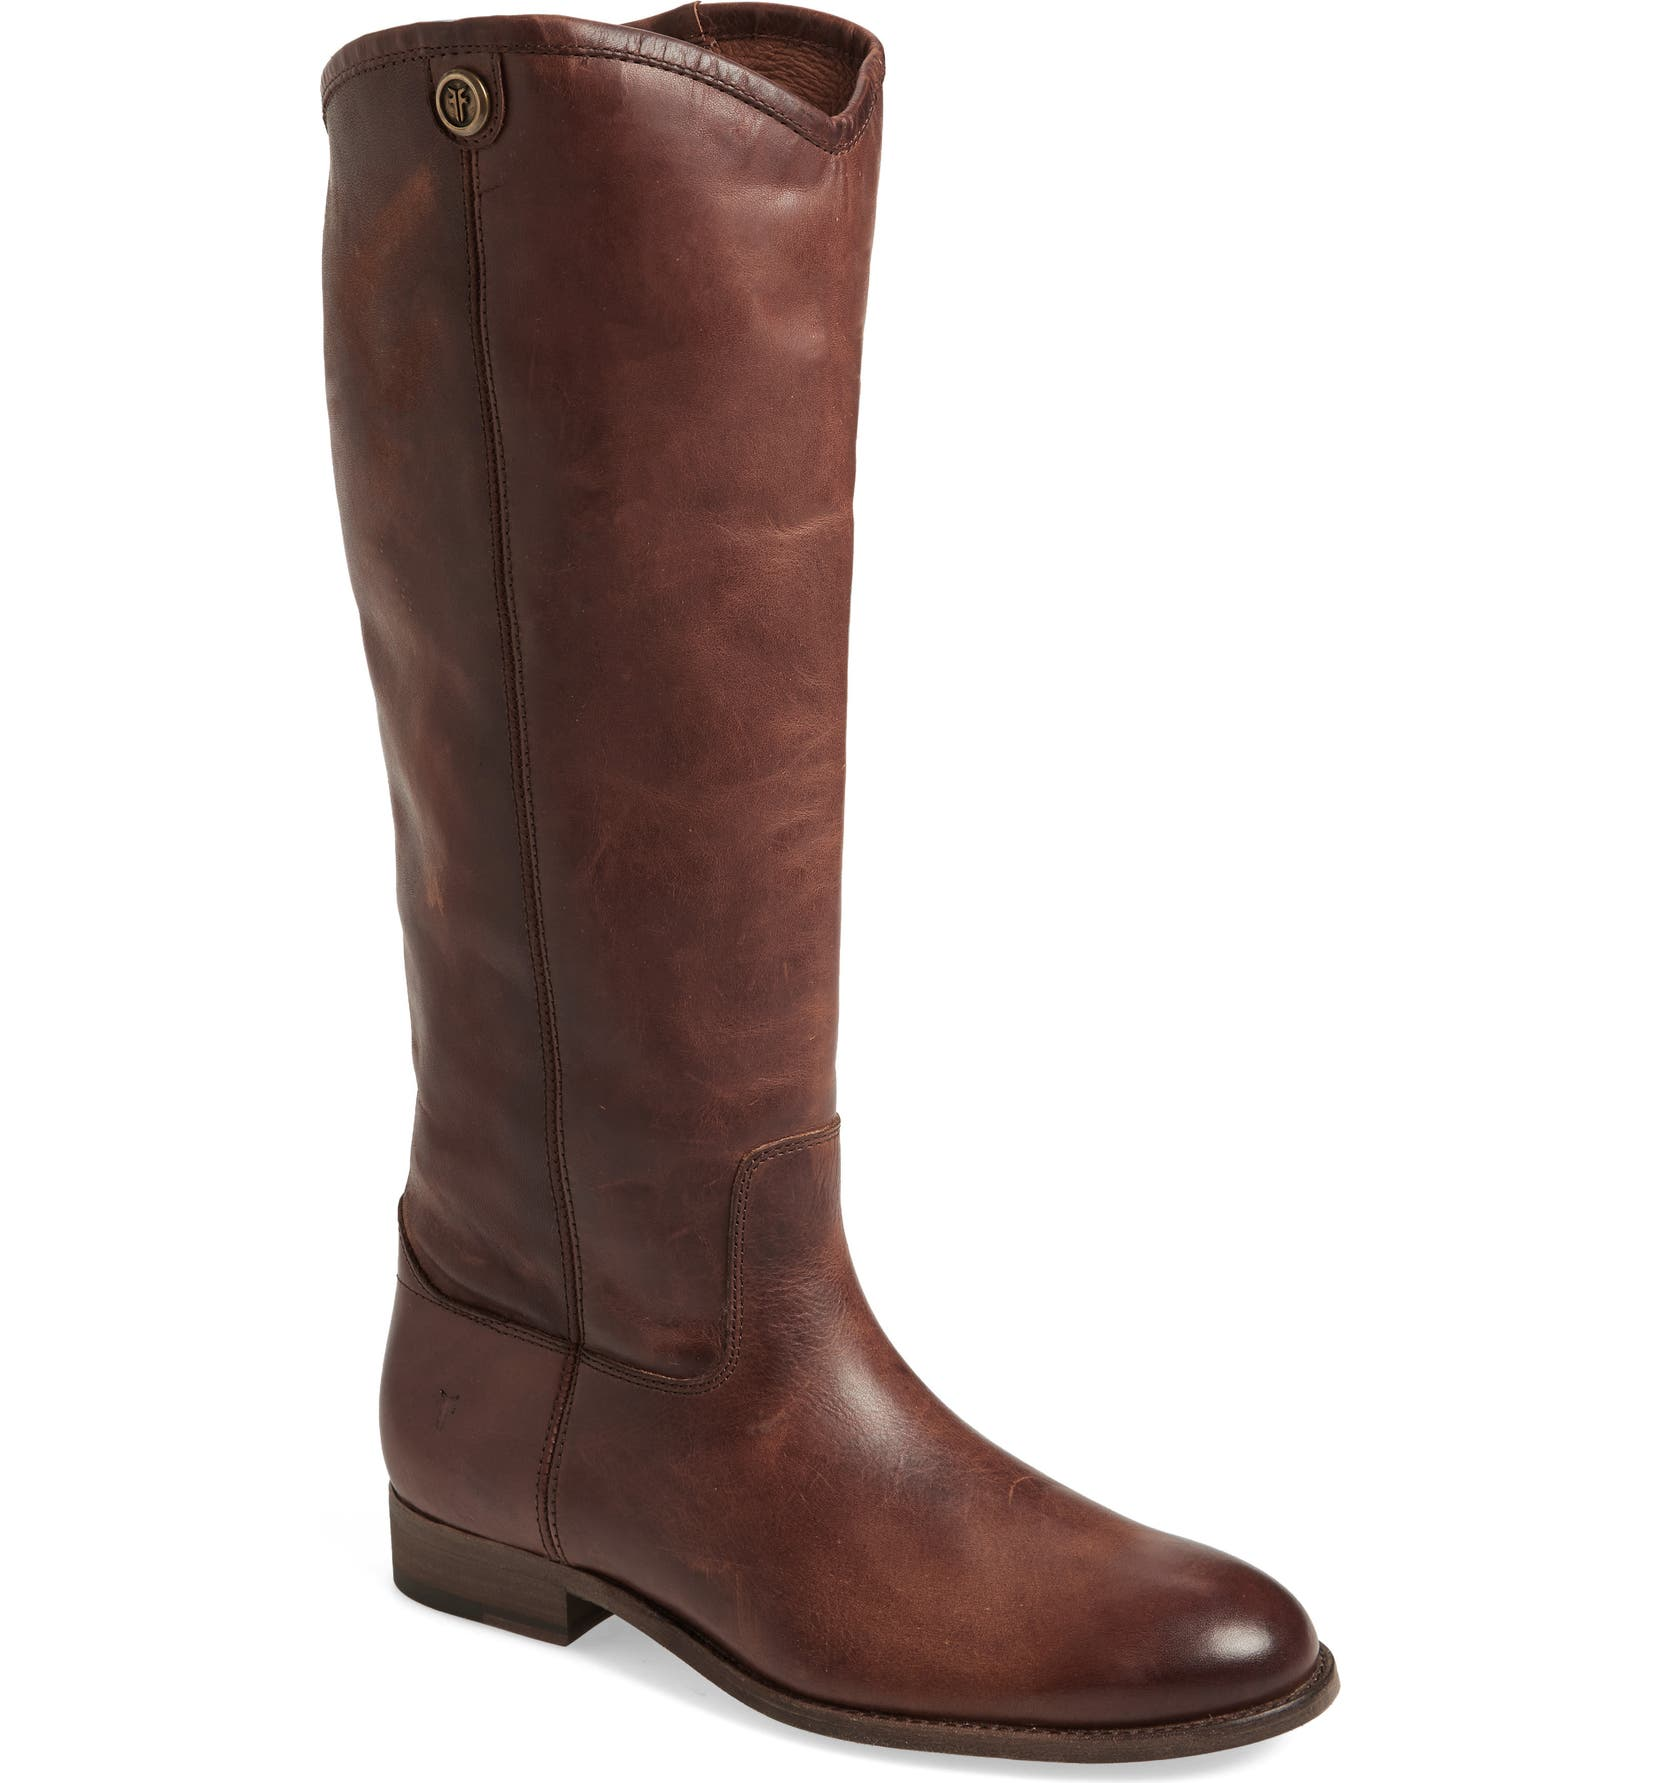 1638ad05797 Melissa Button 2 Knee High Boot